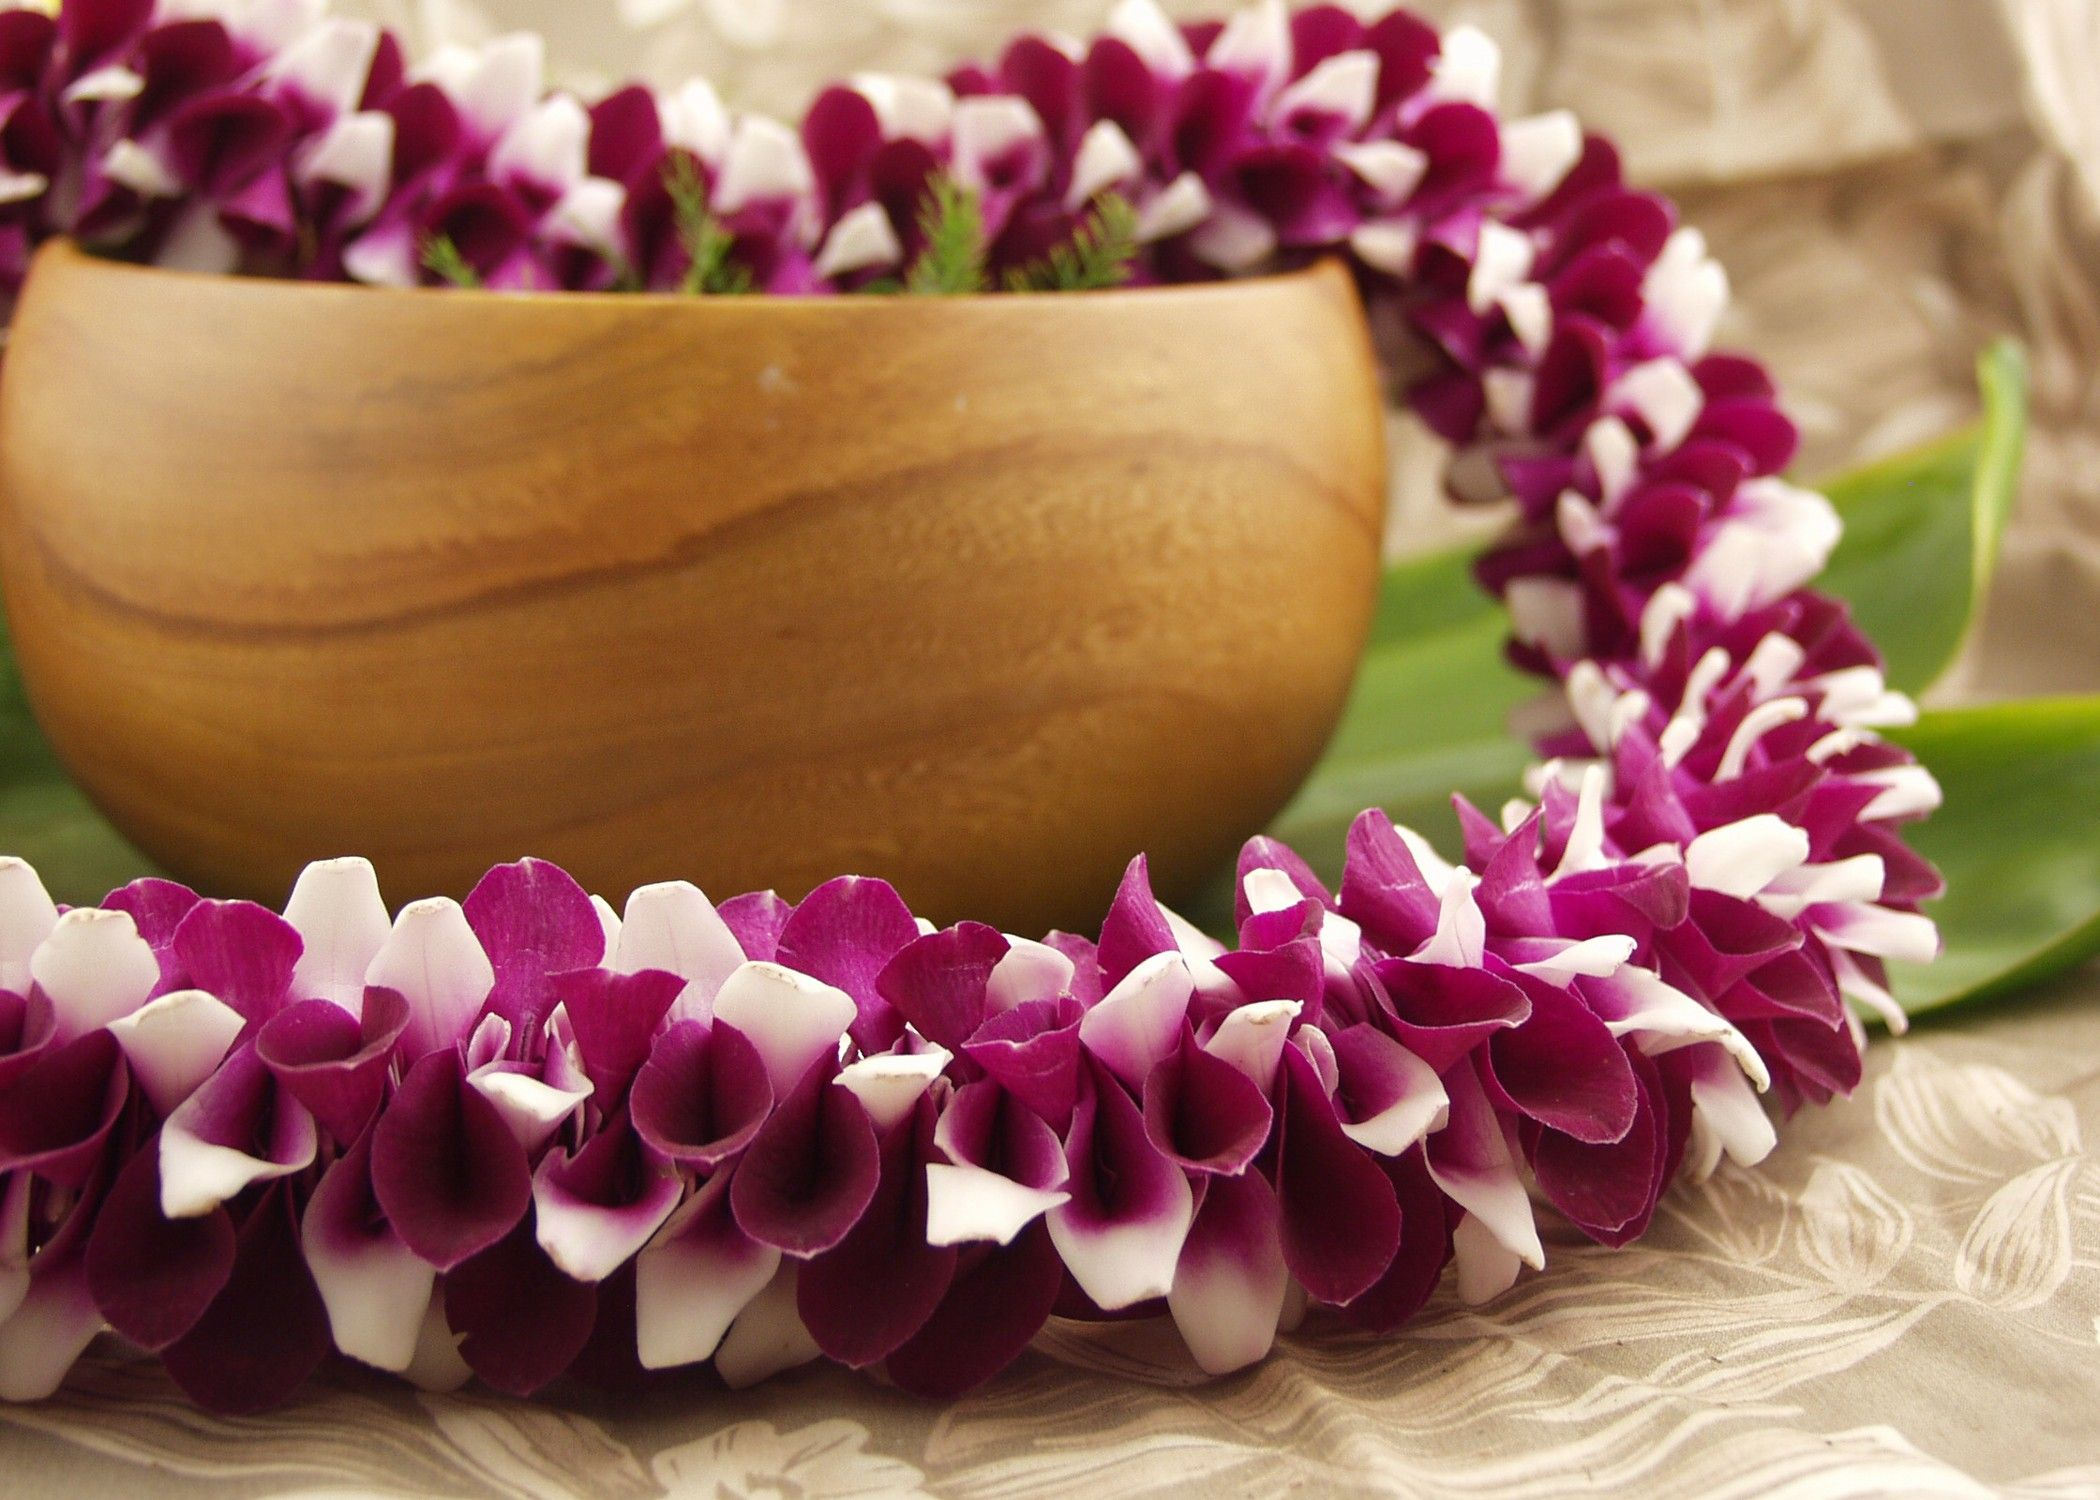 Pin by asayo on lei pinterest purple orchid wedding colorful okika oh kee kah flower leis izmirmasajfo